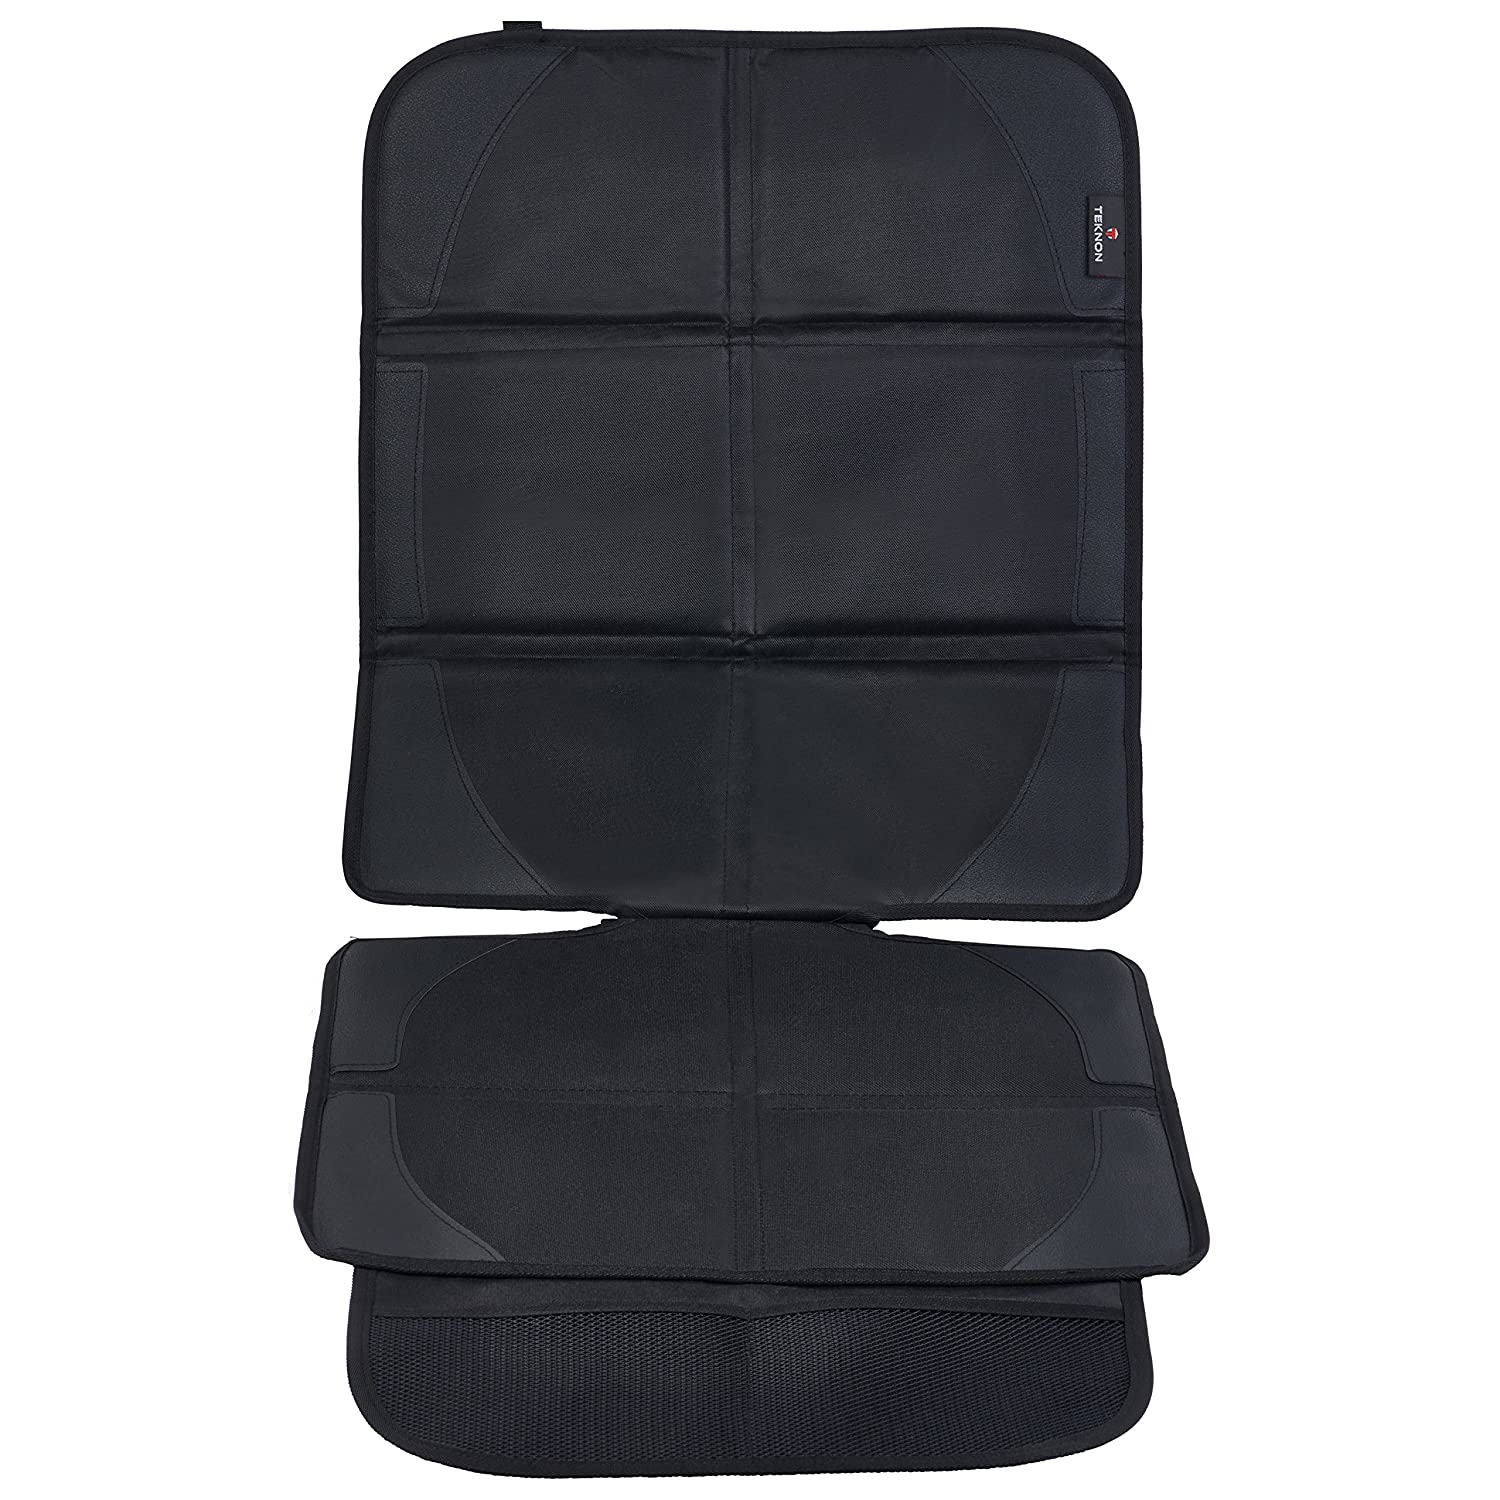 Car Seat Protector Mat for Leather & Upholstery-Waterproof Underpad - Protection from Infant & Toddler Car Seats Teknon